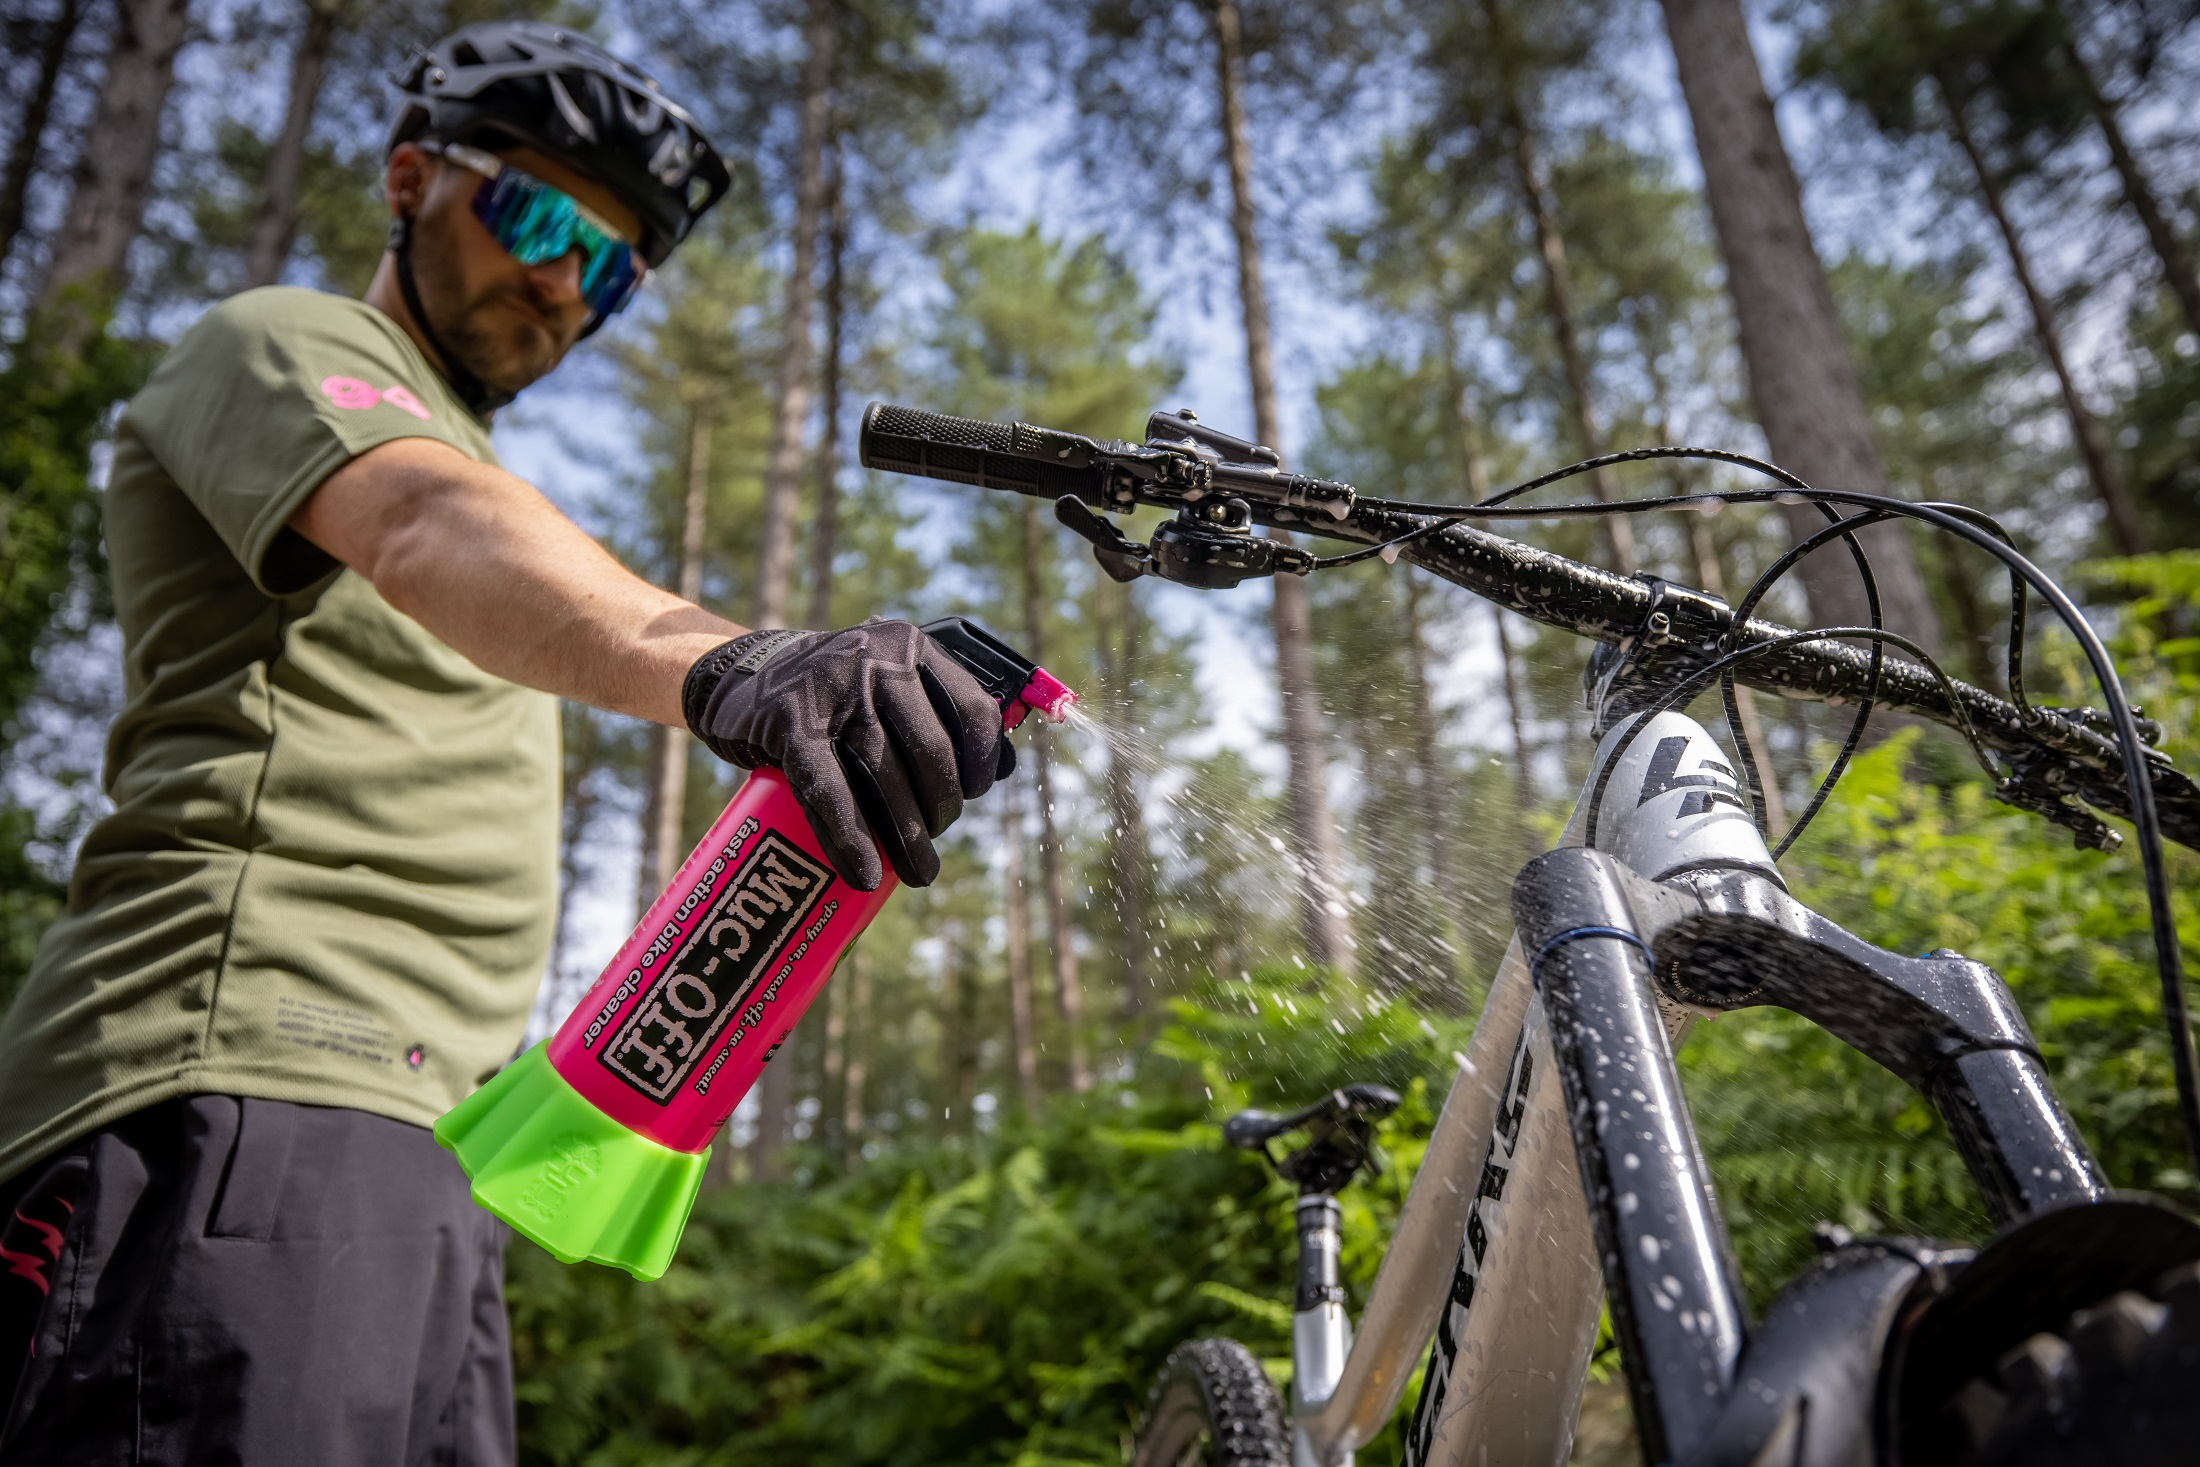 punk mpowder muc-off bottle for life in action